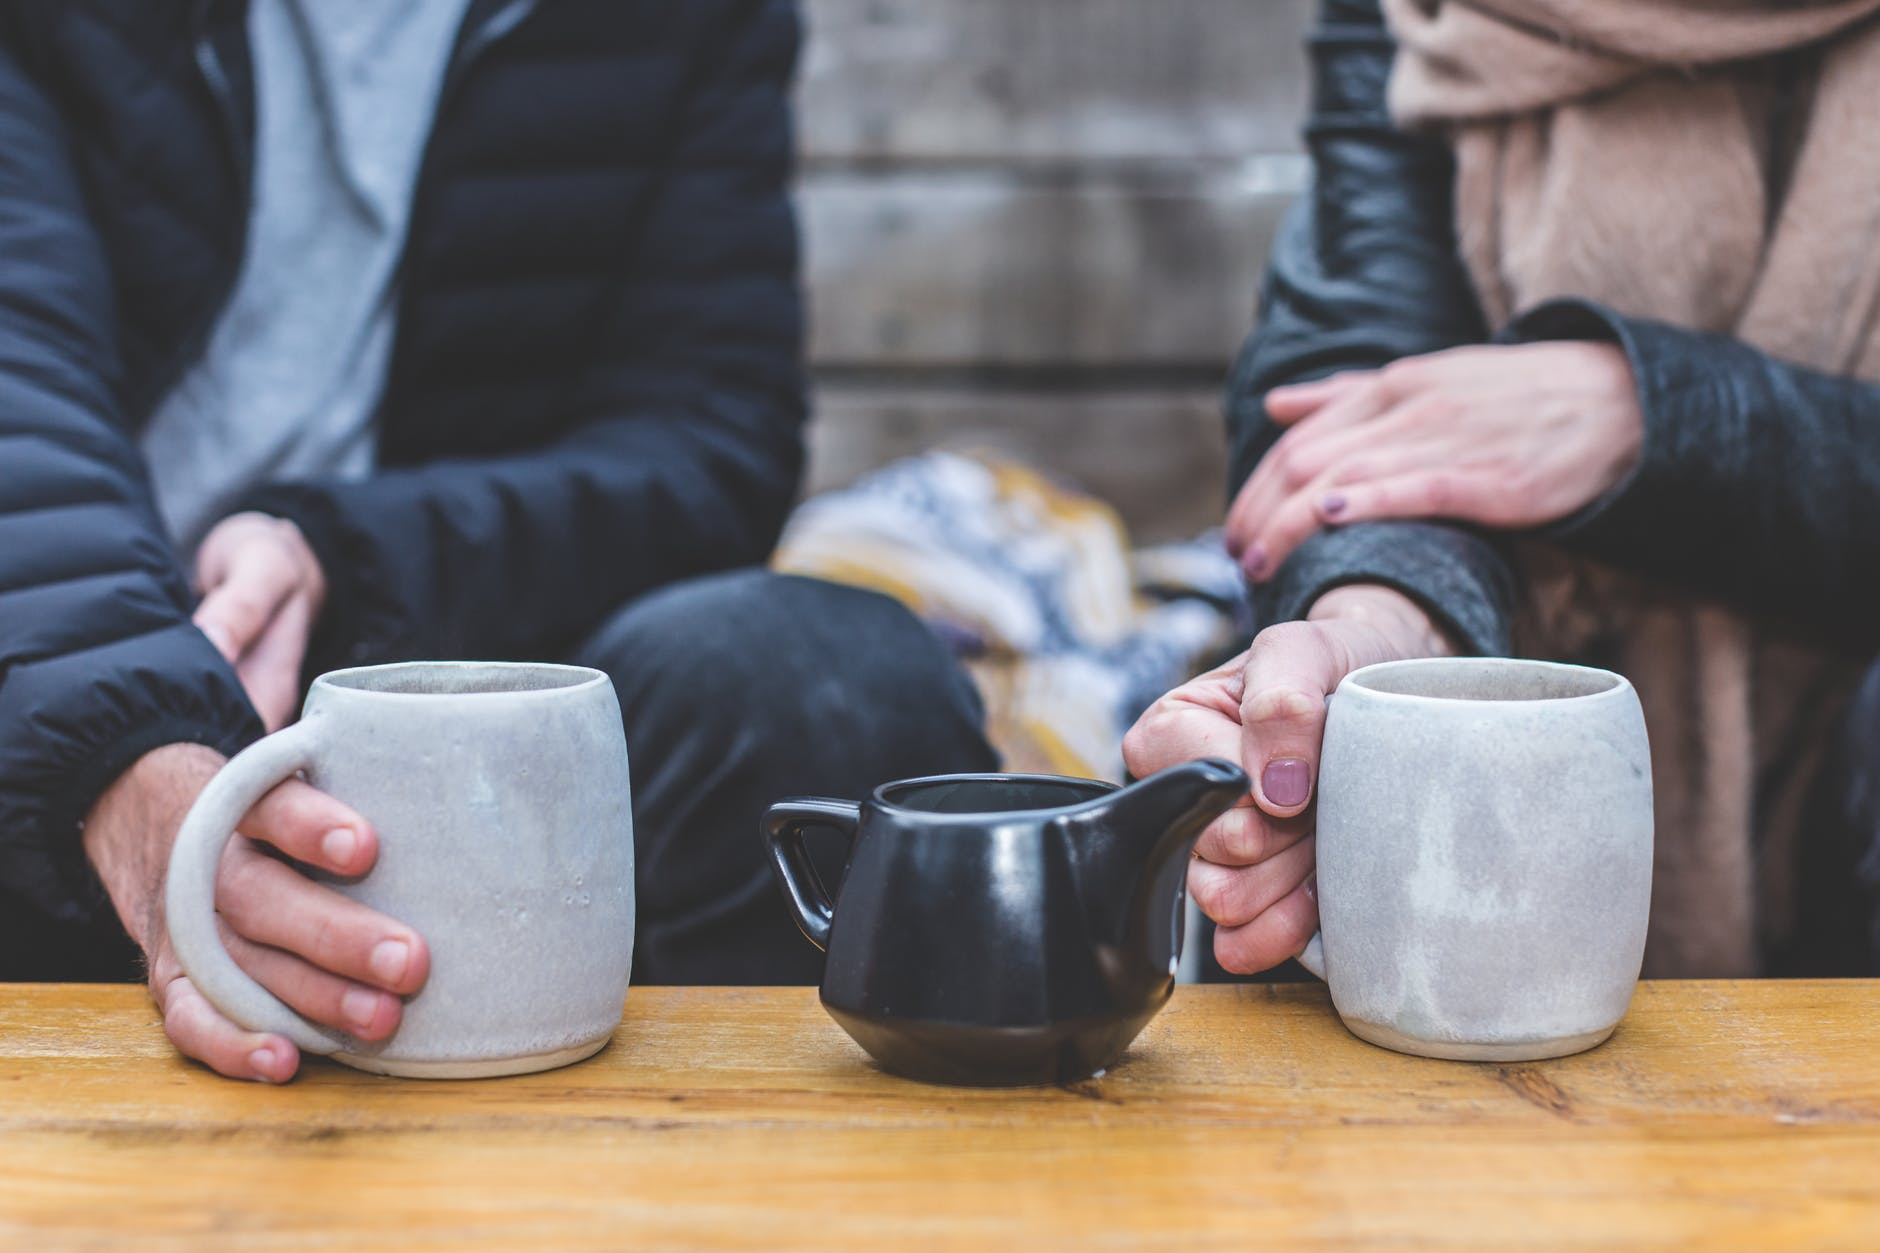 How Vulnerability Can Build Healthy Relationships